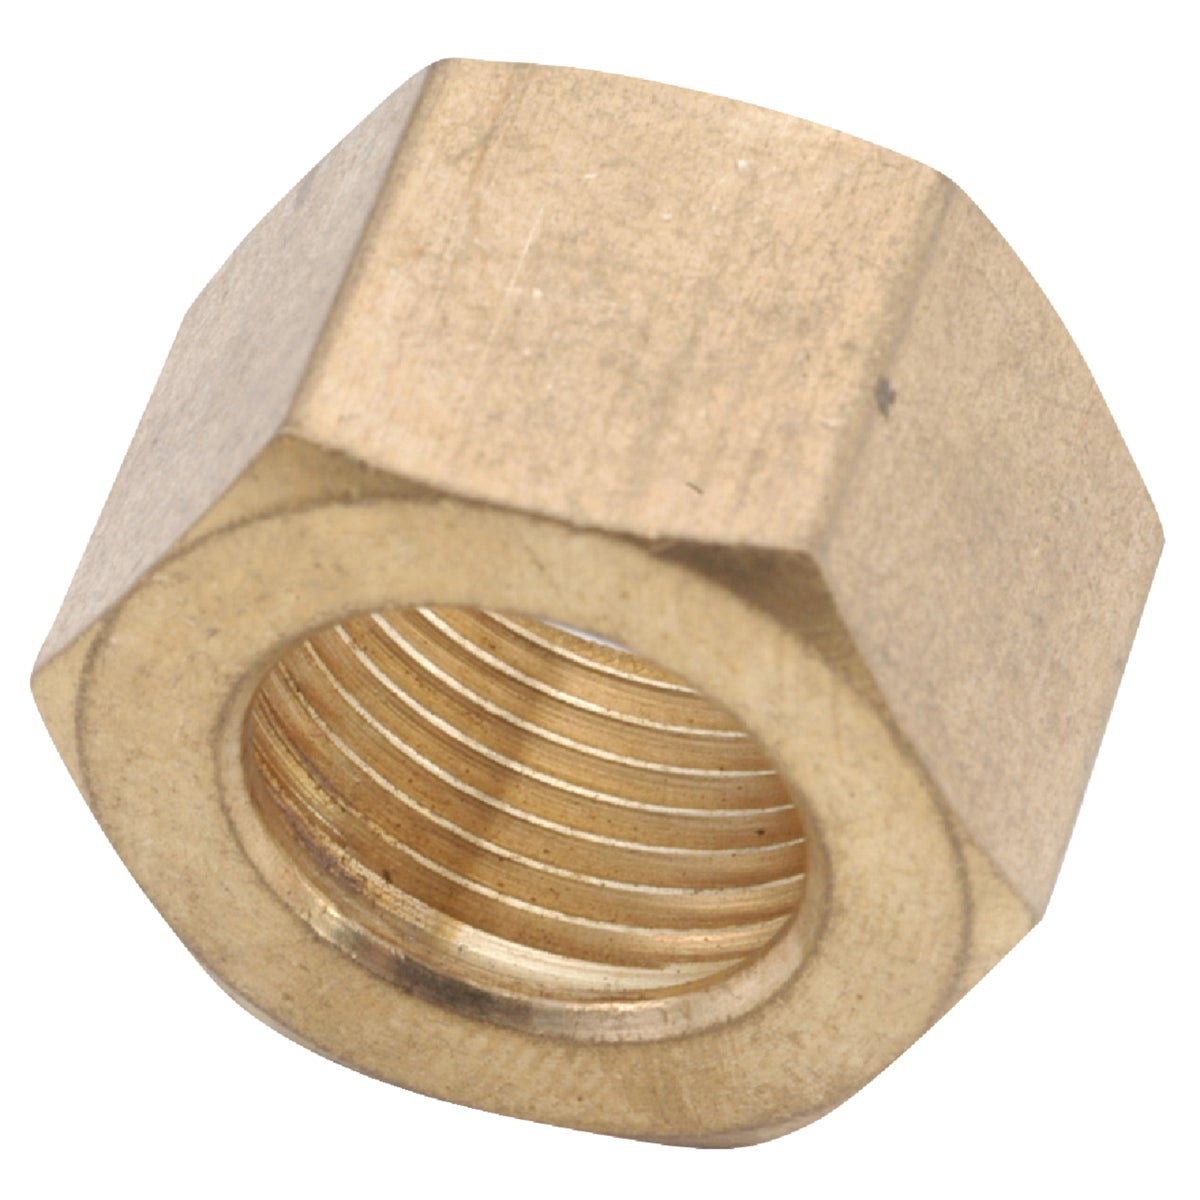 "1/2"" COMPRESSION NUT - 30061-08 by Anderson Metals Corp"